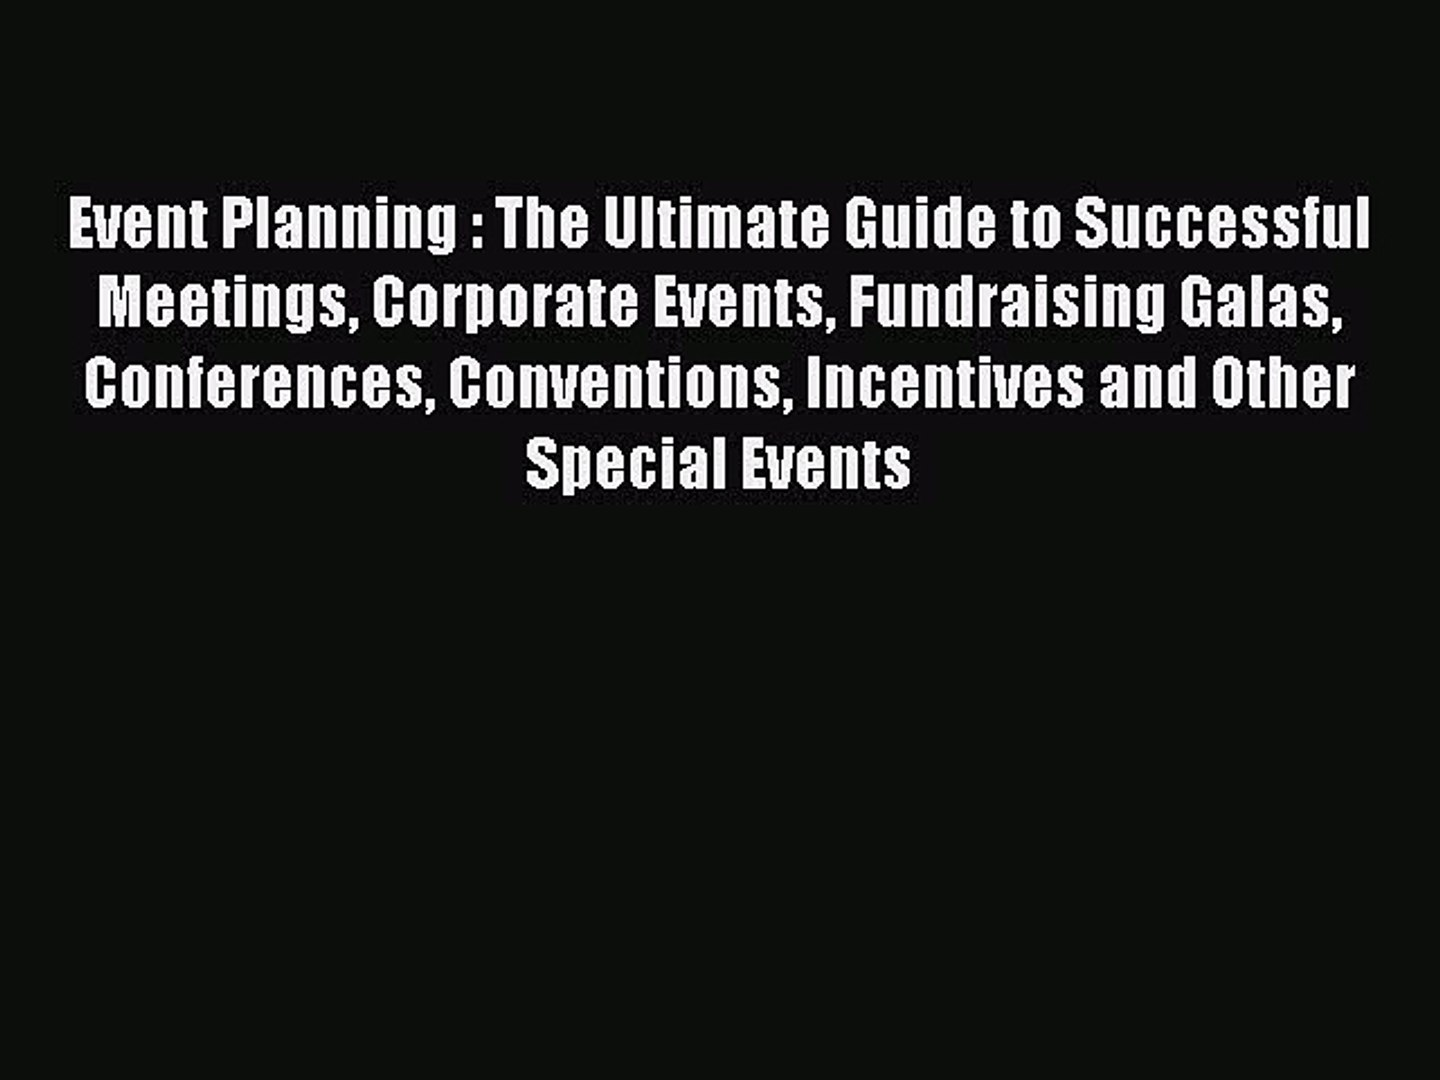 Read Event Planning : The Ultimate Guide to Successful Meetings Corporate Events Fundraising